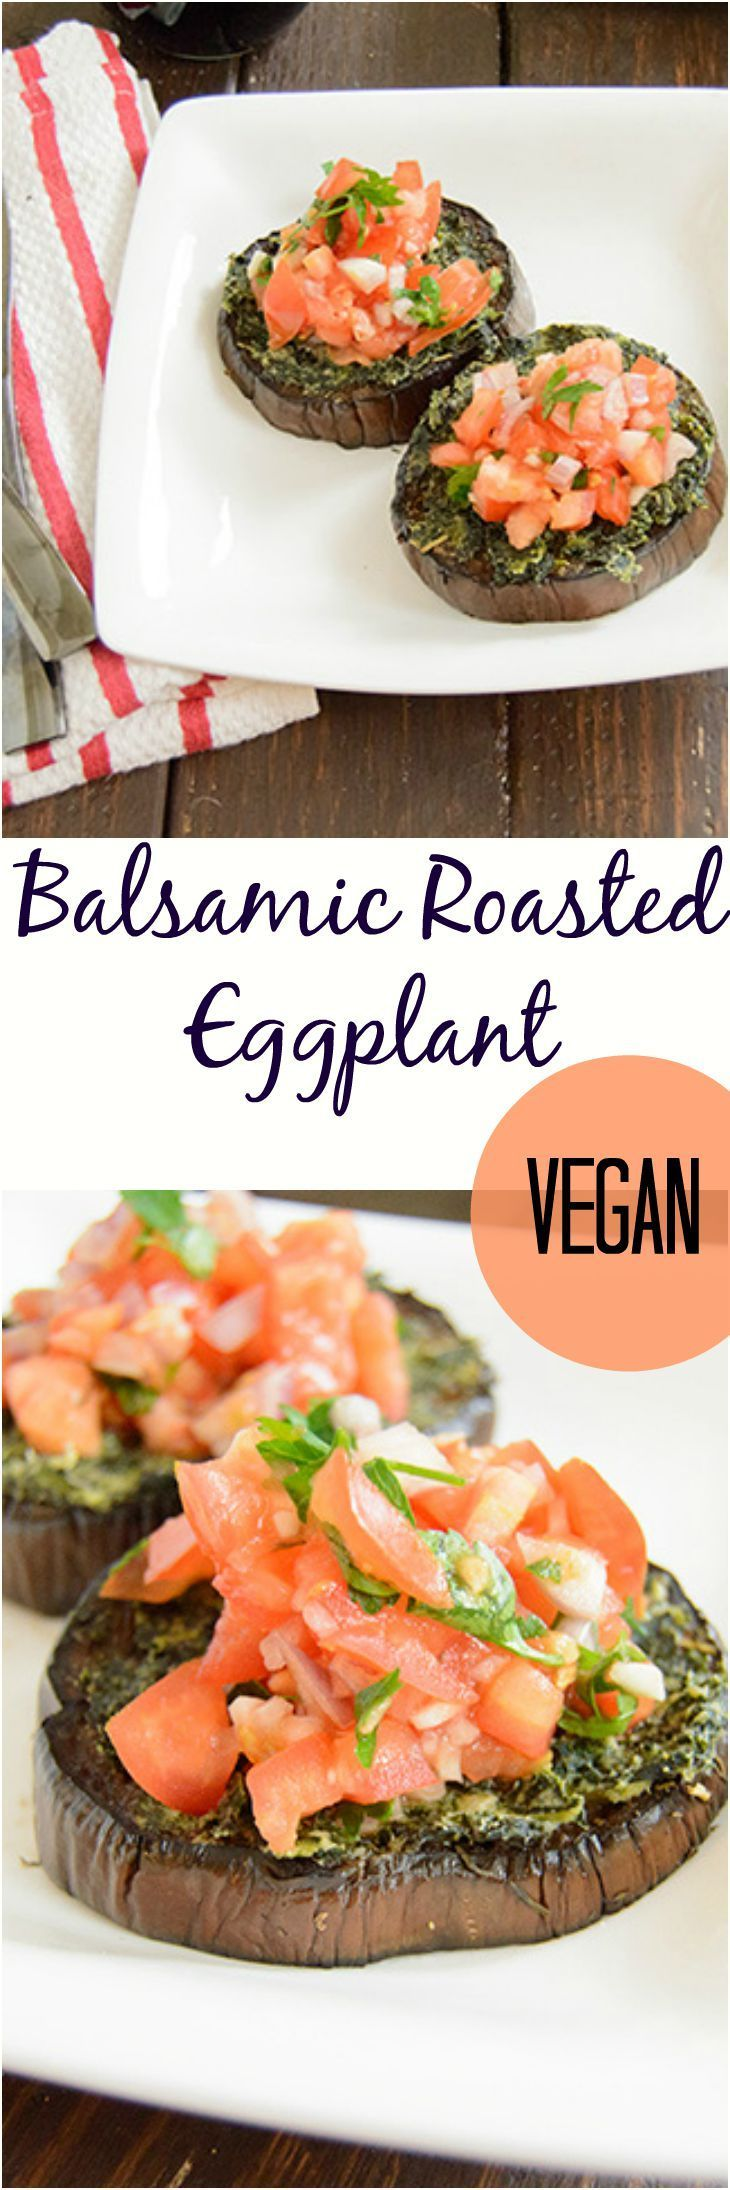 These healthy balsamic roasted eggplant steaks are the perfect dinner idea! Vegan, gluten free, and packed with flavor, this recipe is sure to please vegans and meat eaters alike!